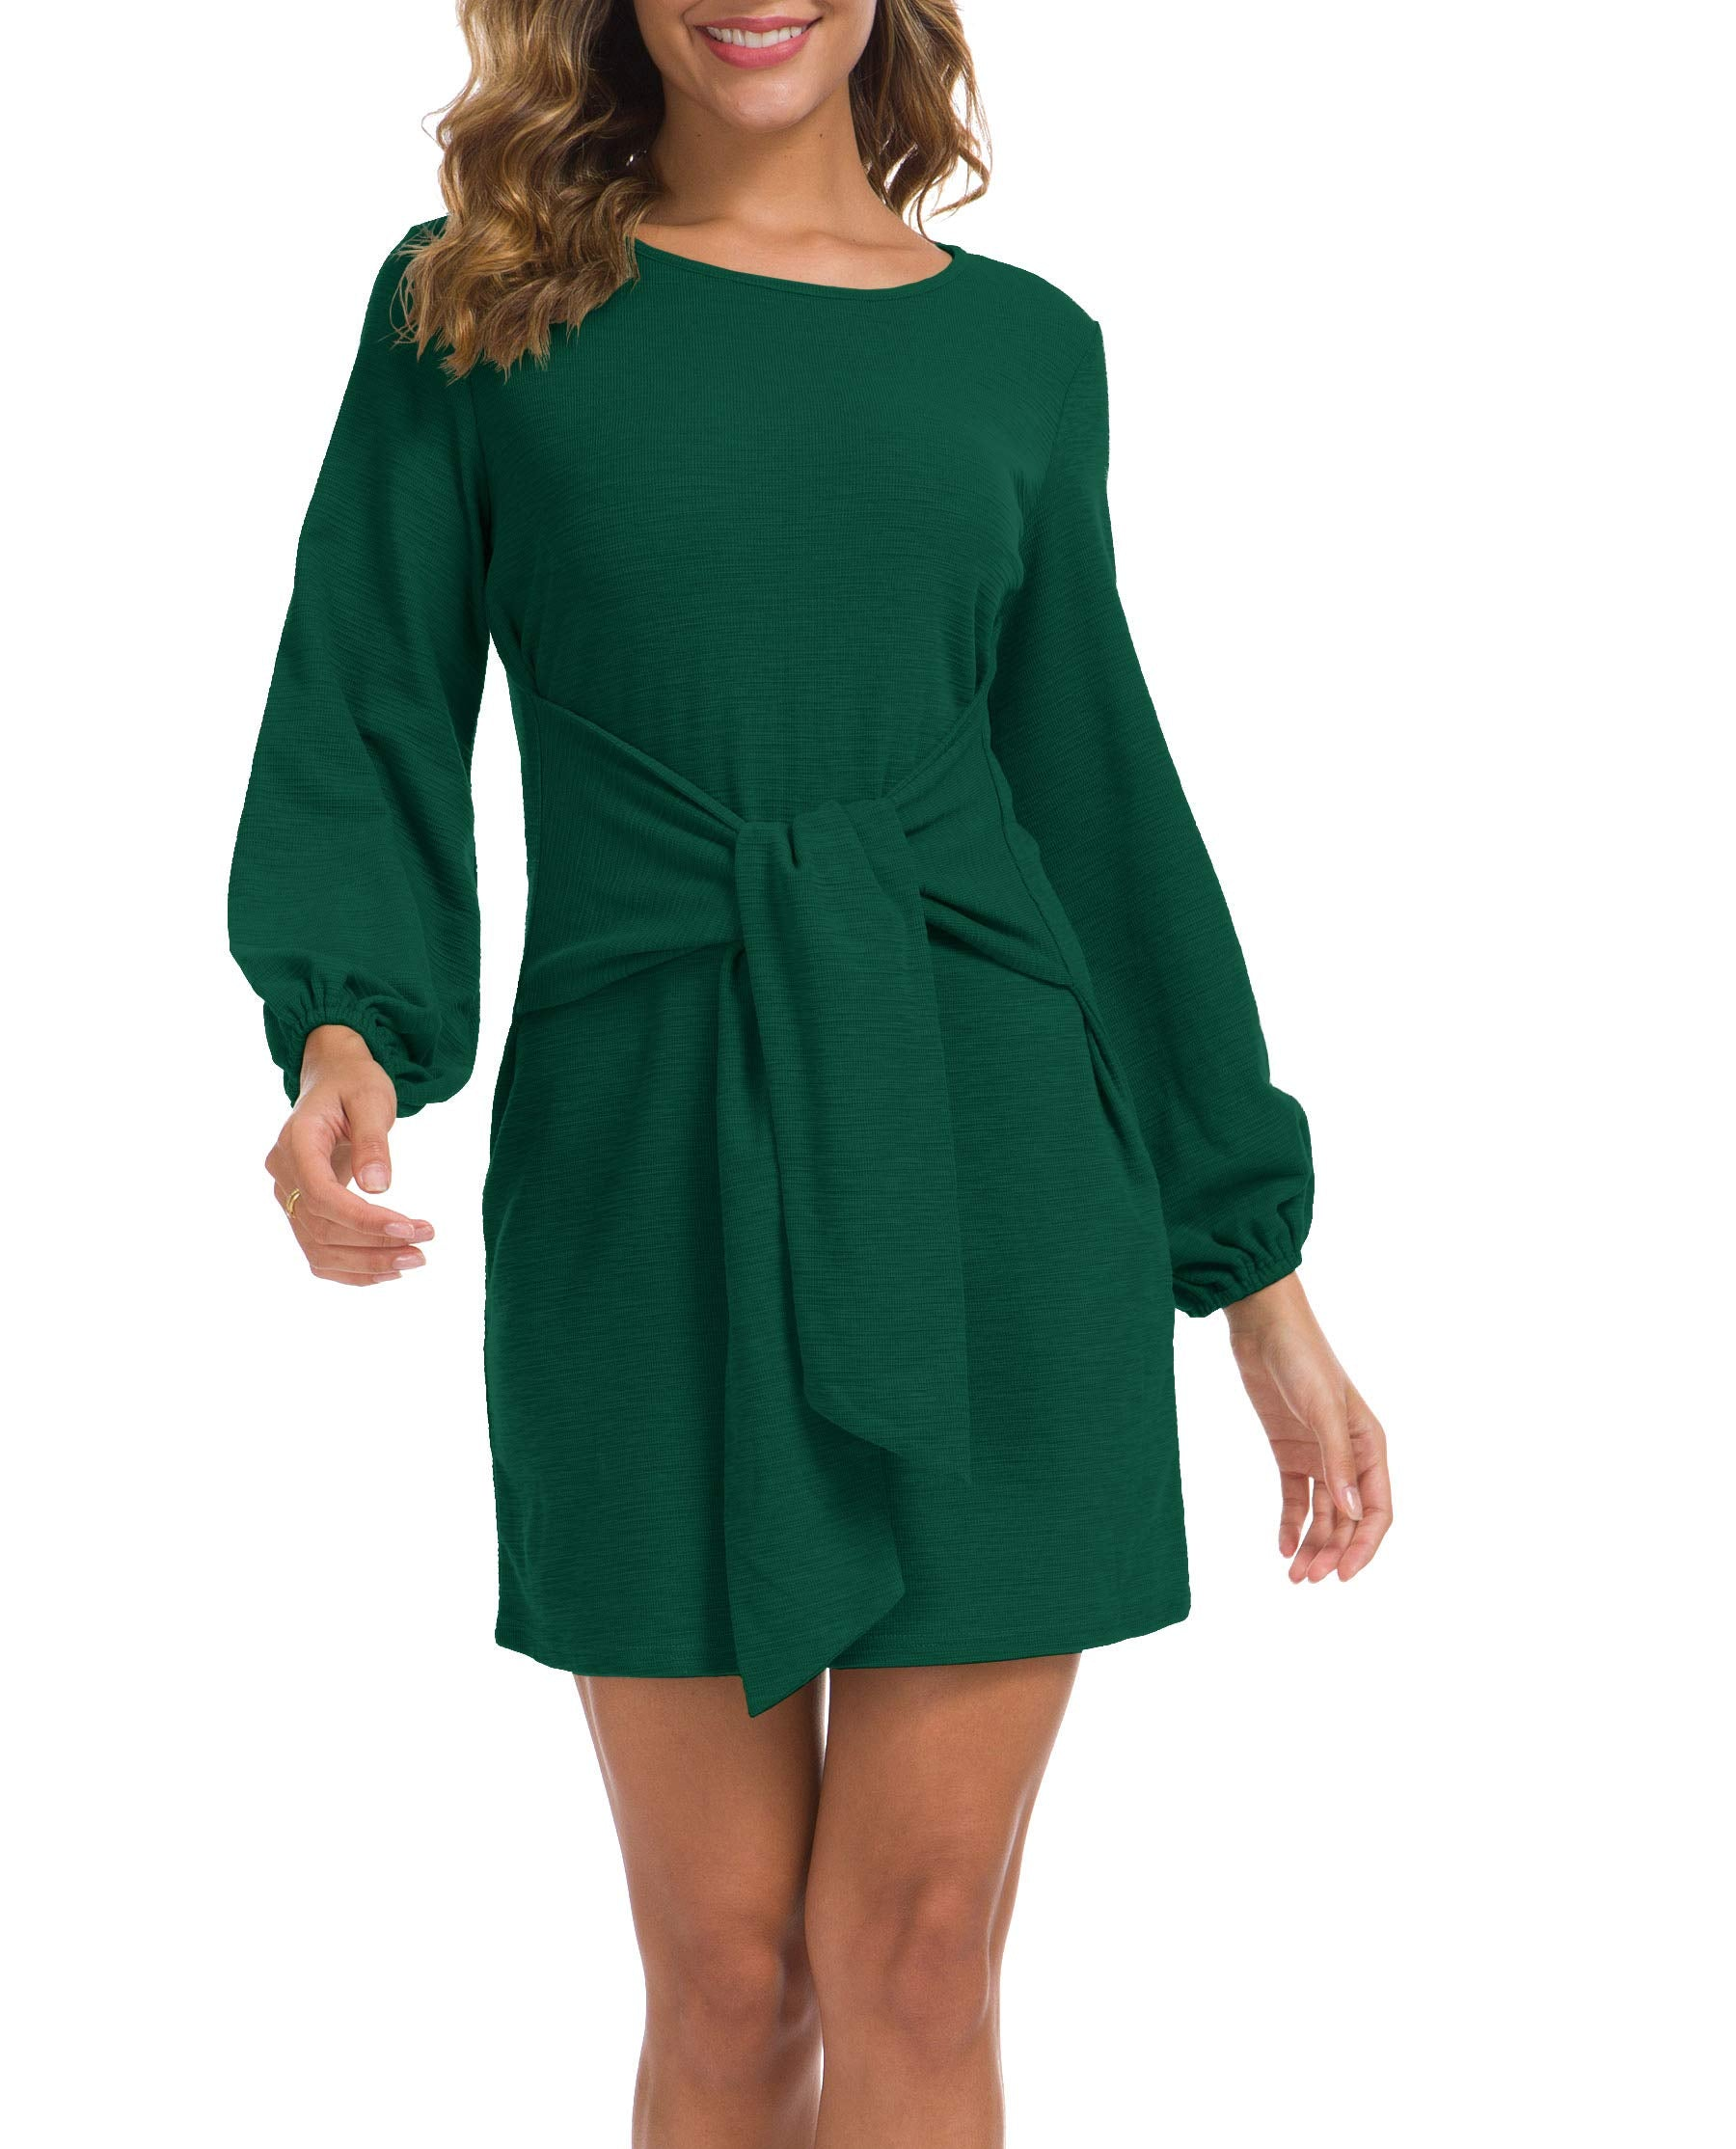 Lionstill Women's Elegant Long Sleeve Dress Casual Tie Waist Sweater Dresses Dark Green Large - wiihuu